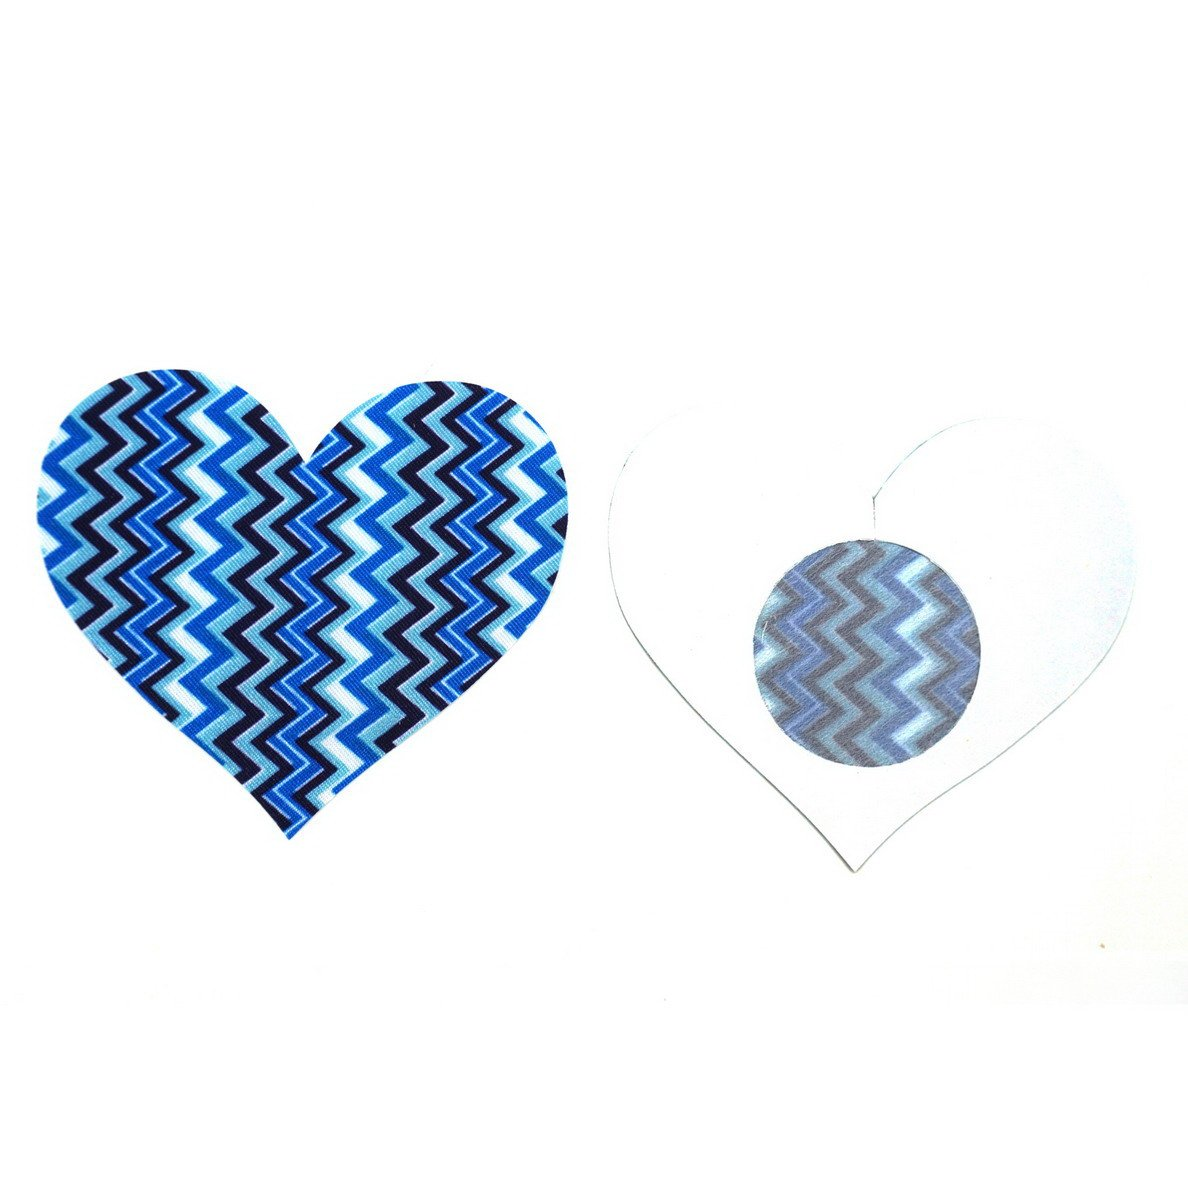 2abc50dbb6b89 10 Pairs Women Heart Shaped Disposable Pasties Nipple Cover Lingerie  Stickers - Blue  Amazon.ca  Luggage   Bags